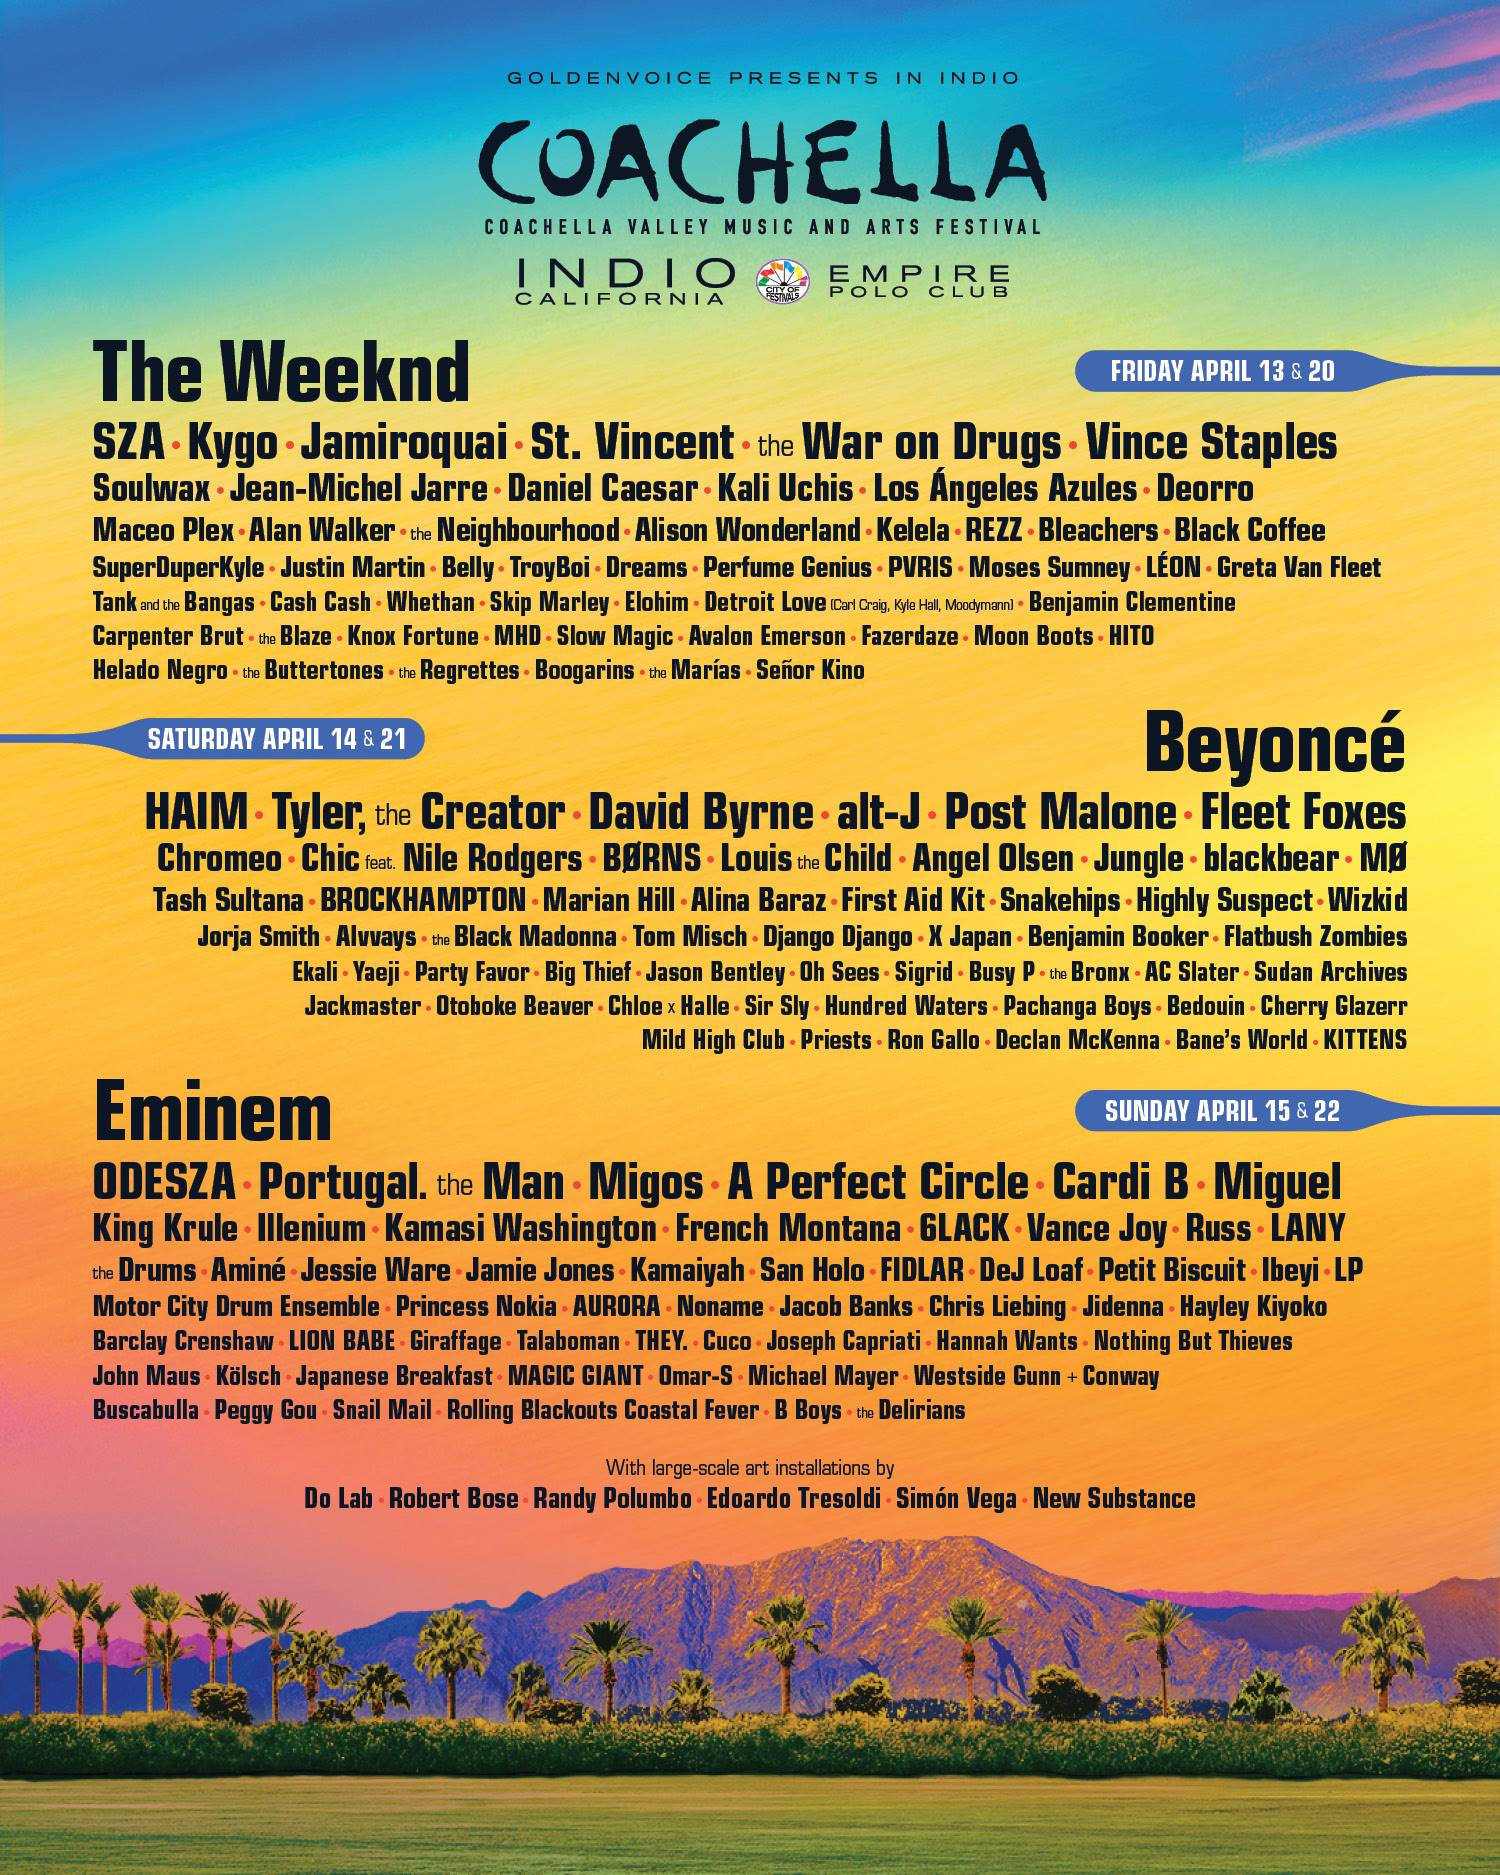 Coachella announces headliners, full lineup for 2018 weekends